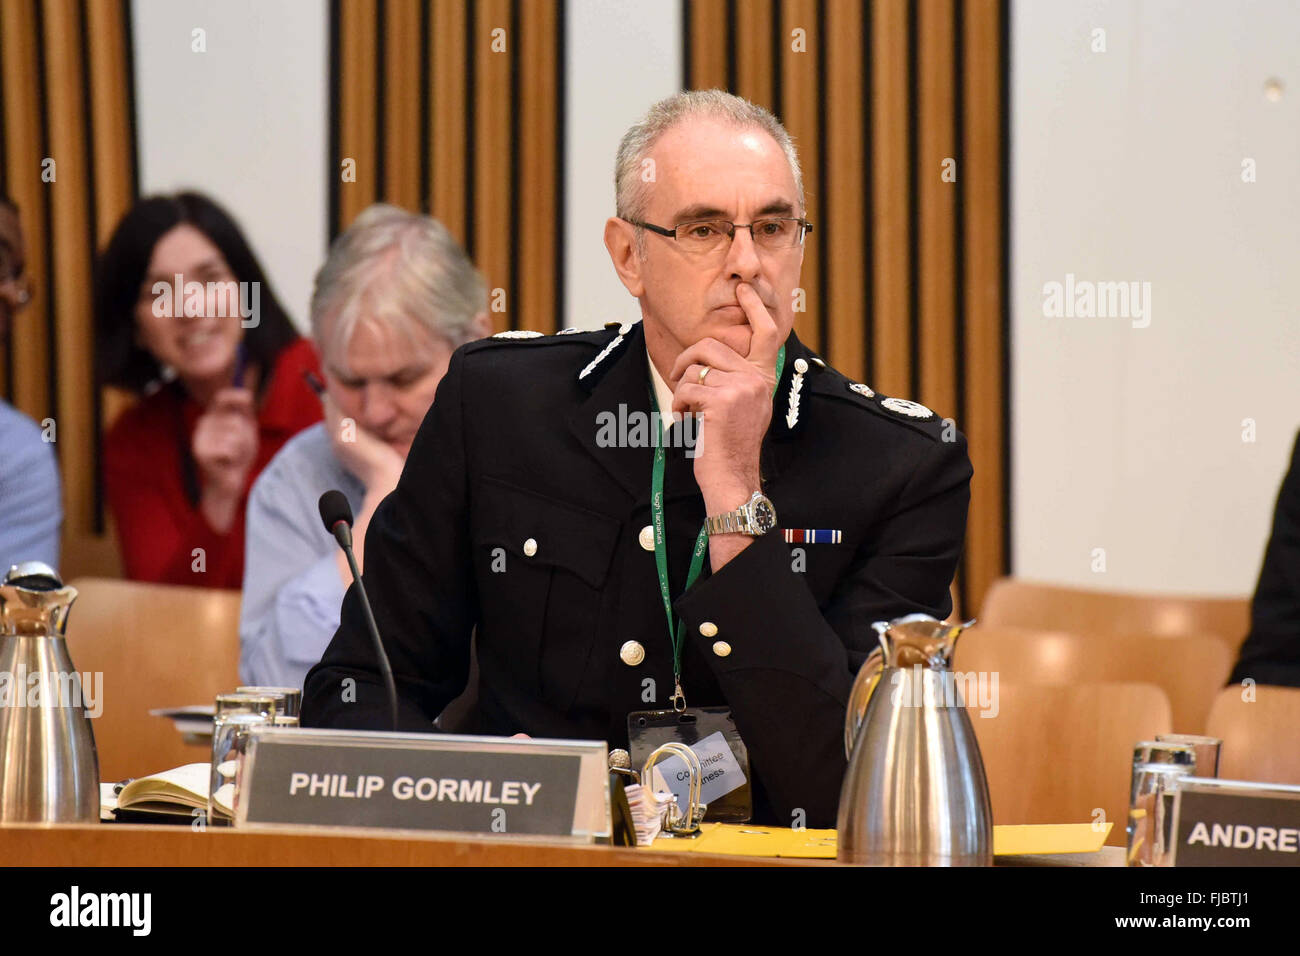 Edinburgh, Scotland, 1st March, 2016. Chief Constable of Police Scotland Philip Gormley appears before the Scottish - Stock Image